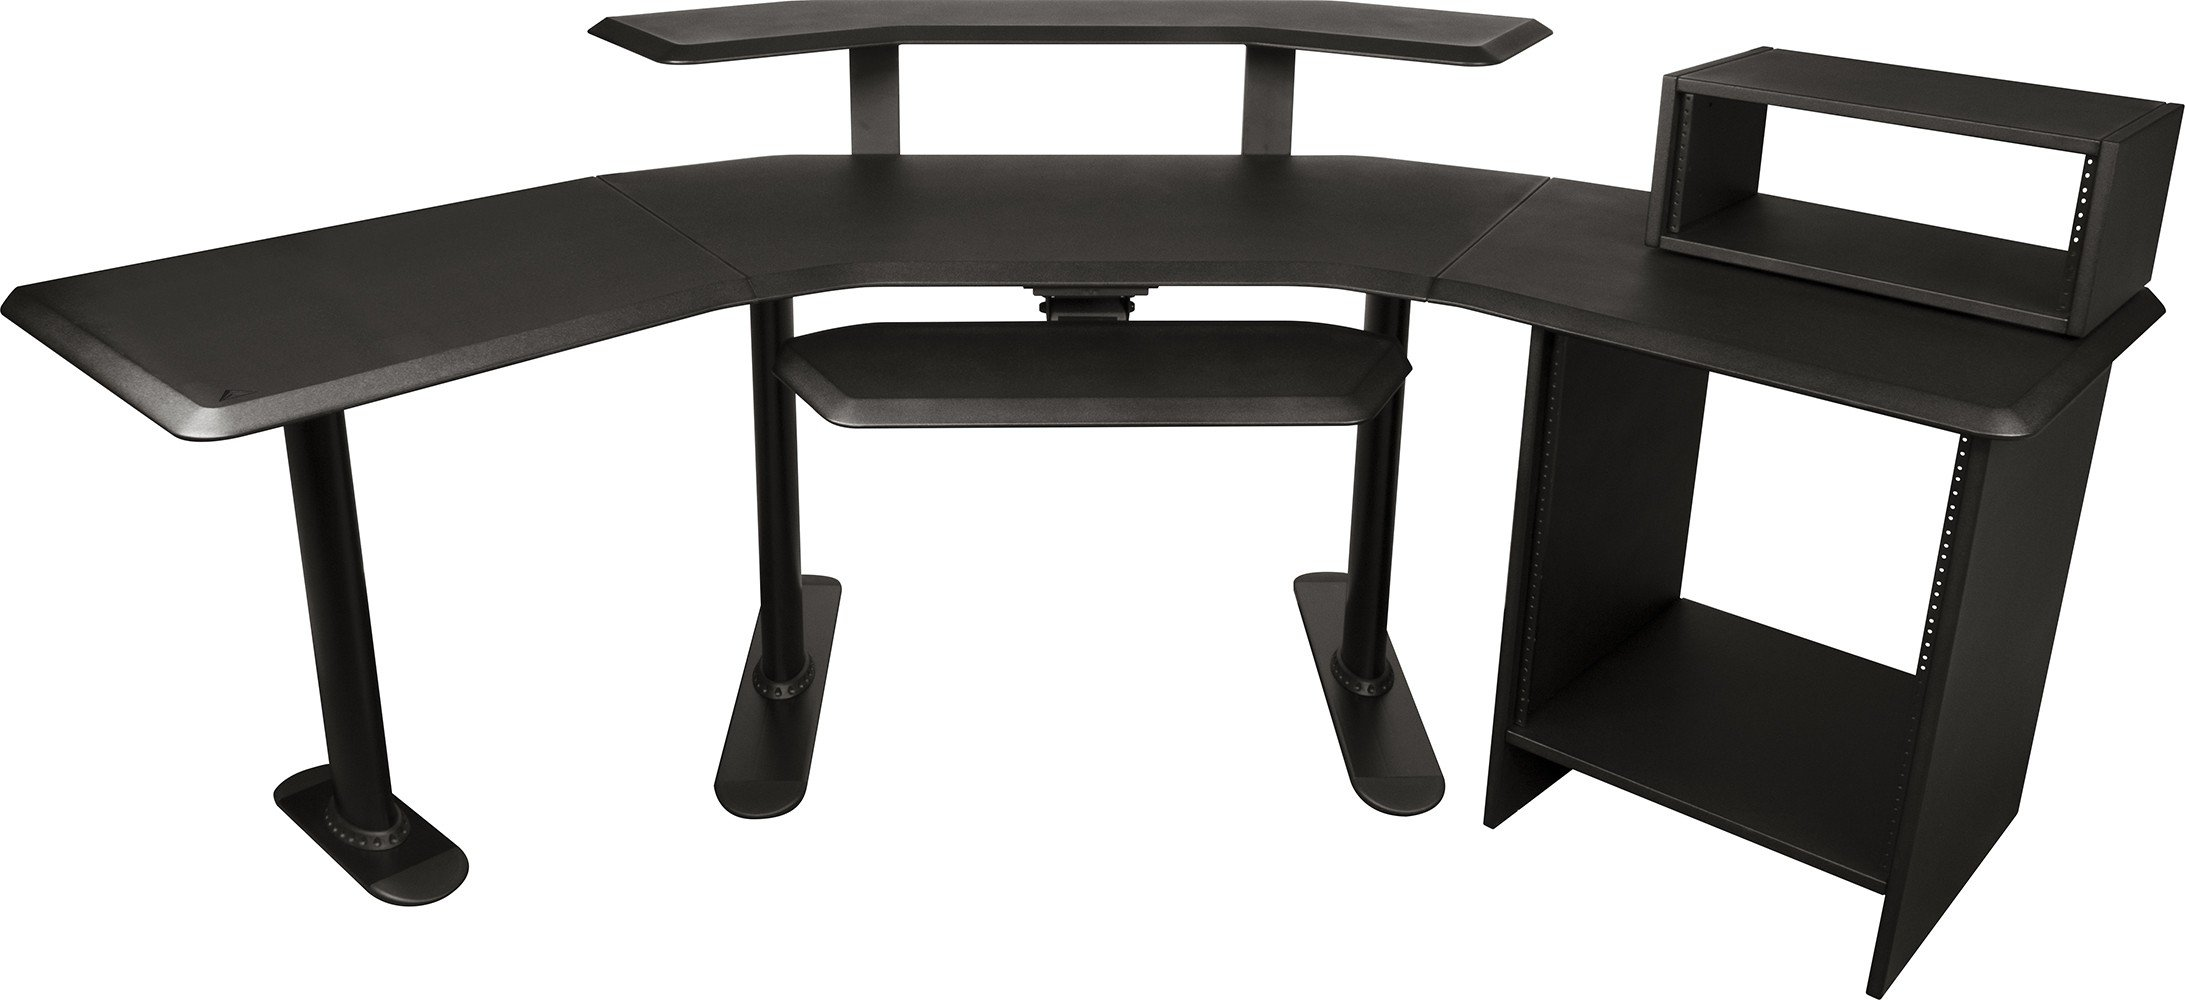 Ultimate Support Nucleus 4 - Studio Desk - Base model, 24'' extension, 12 space rack, 2nd Tier, 4 space rack, Keyboard Tray